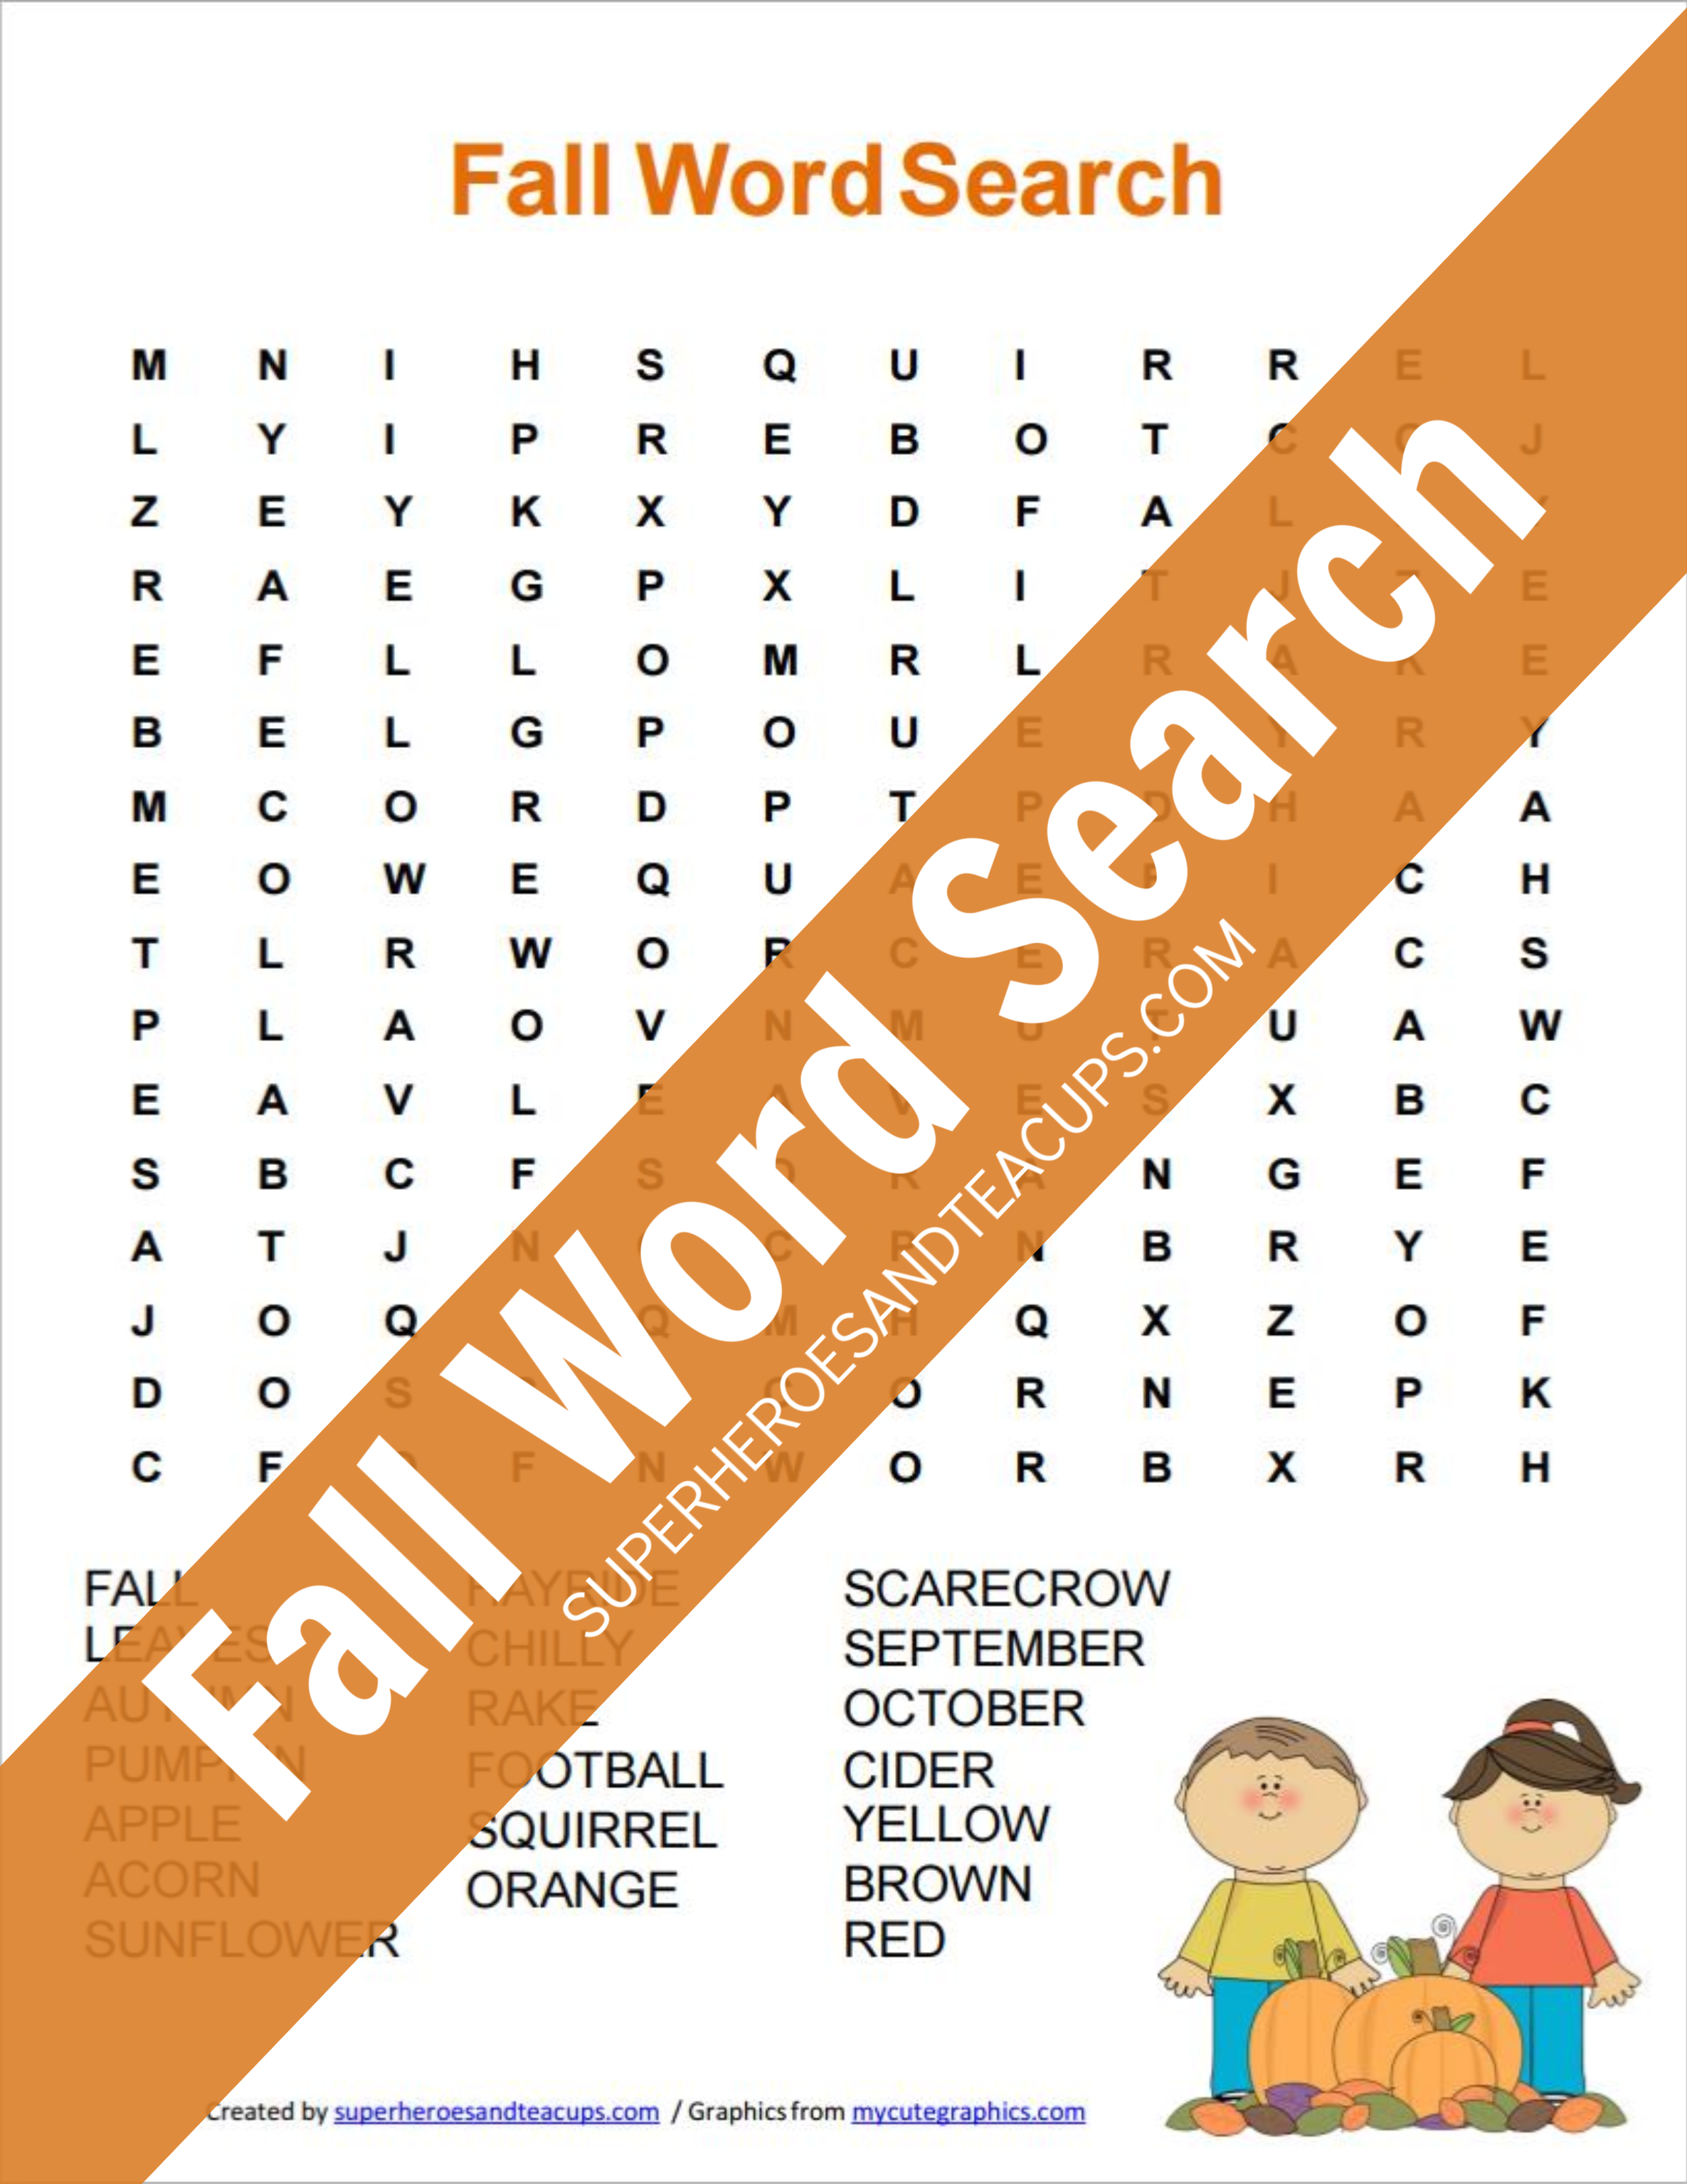 photo regarding Fall Word Search Printable identify Tumble Phrase Glance No cost Printable Superheroes and Teacups